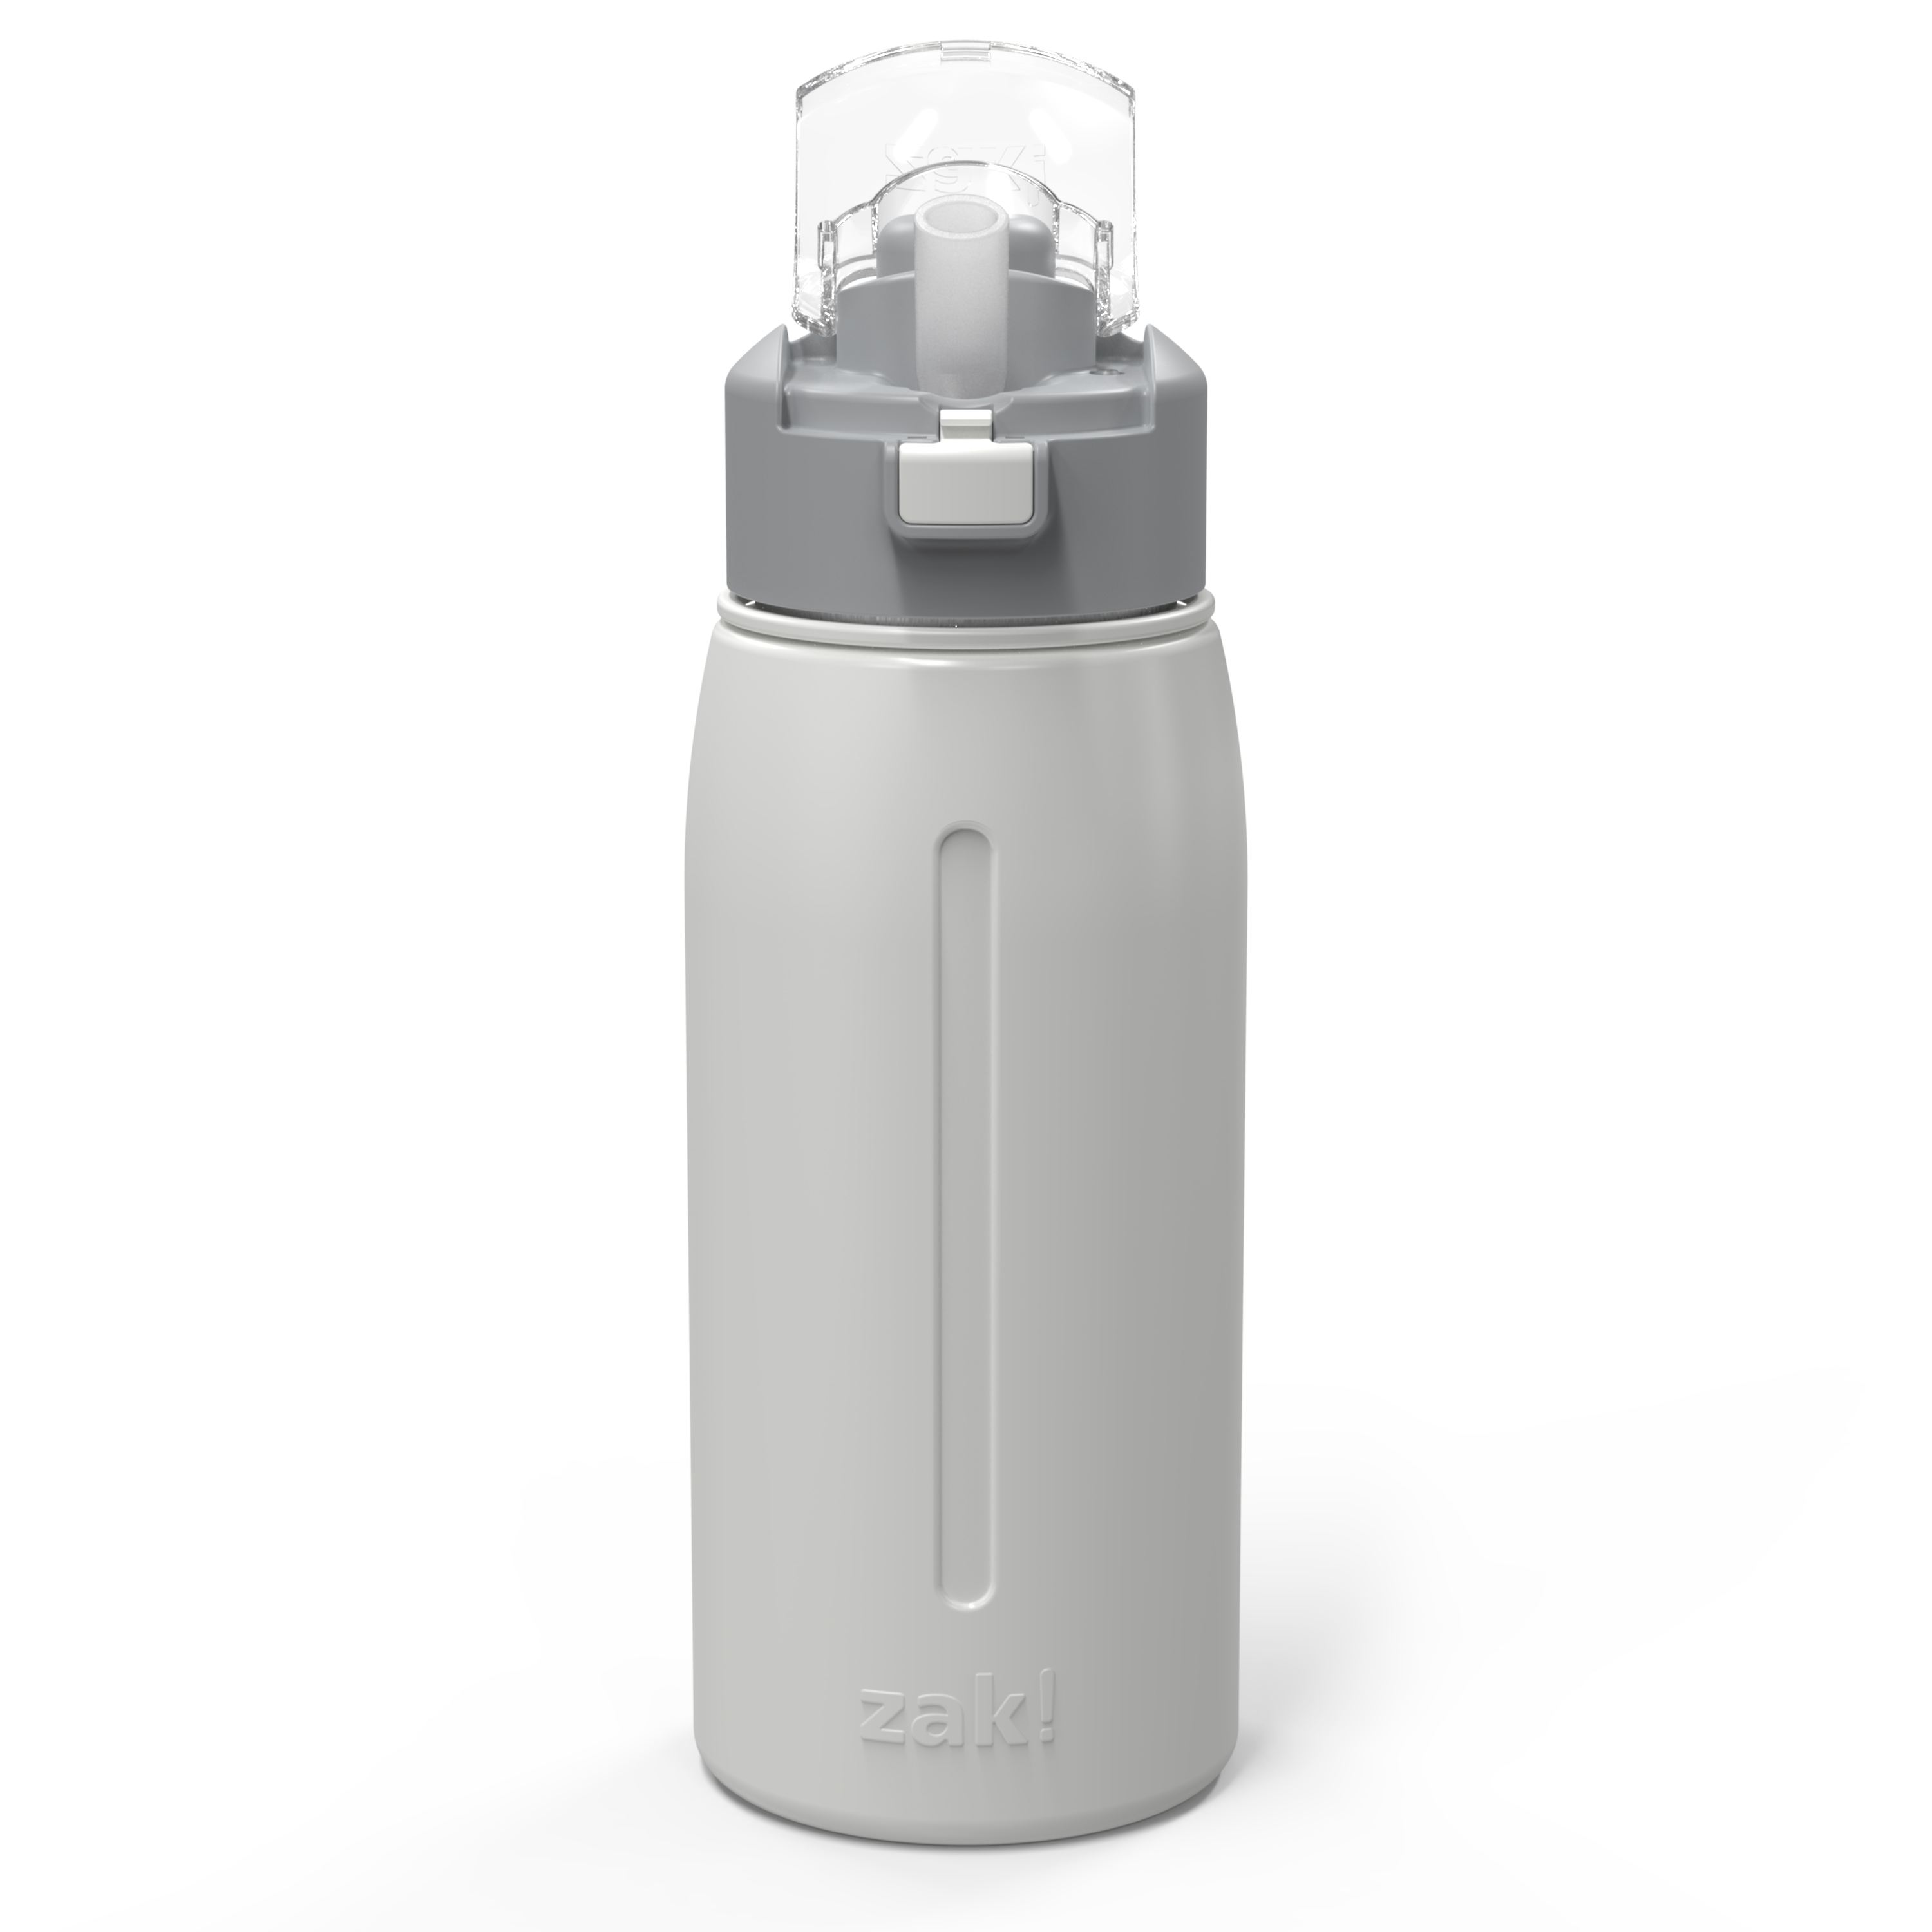 Genesis 24 ounce Vacuum Insulated Stainless Steel Tumbler, Gray slideshow image 5